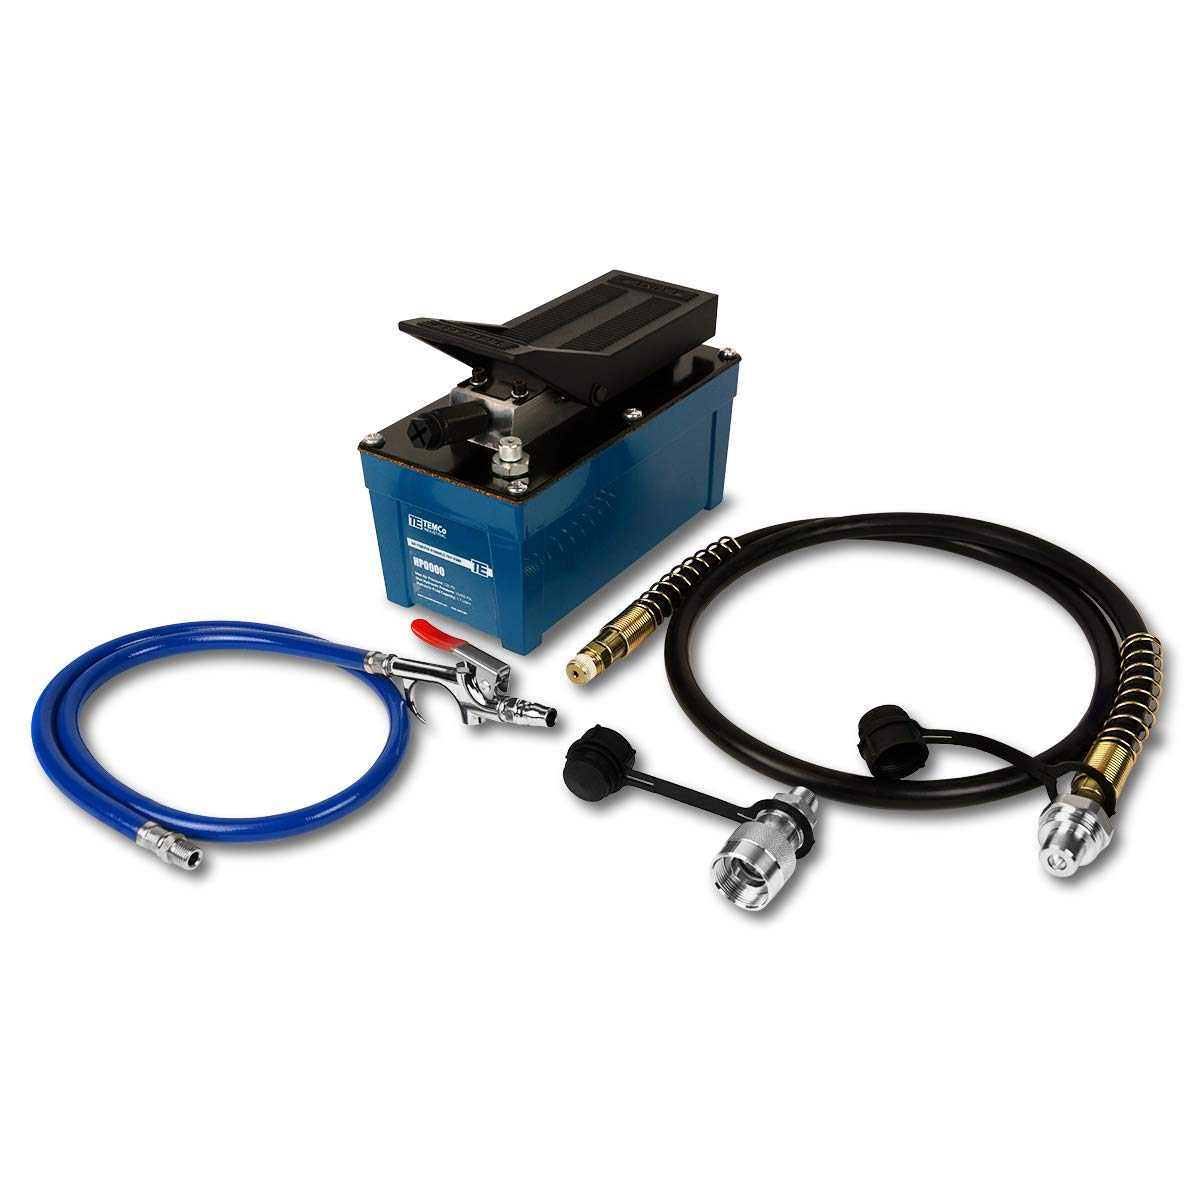 TEMCo HP0000 - Air Hydraulic Pump Power Pack Unit 10,000 psi 103 Cubic in Capacity - 5 Year Warranty